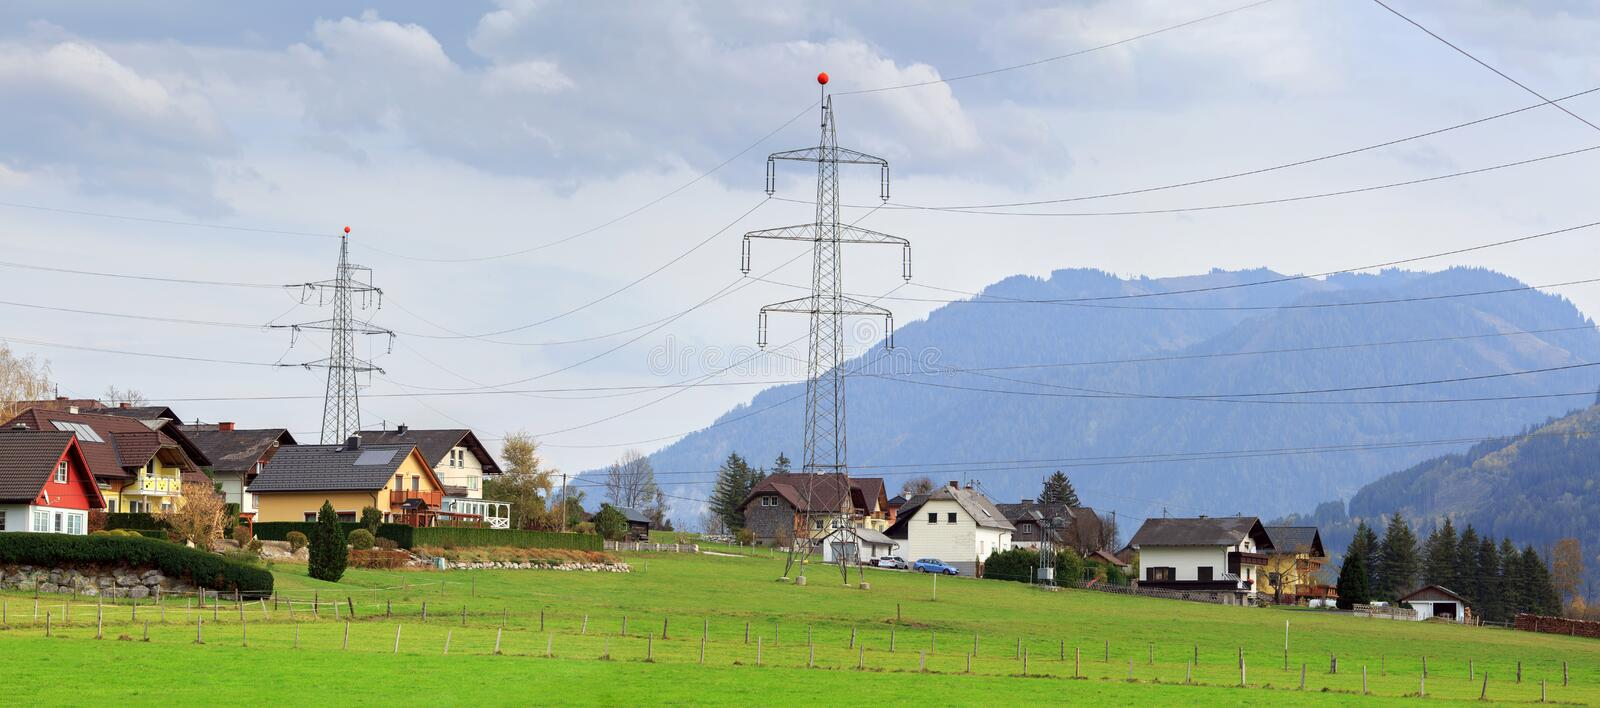 Panoramic view of the alpine village Unterburg with the power transmission line tower in the foreground. Styria, Austria, Europe. royalty free stock photography